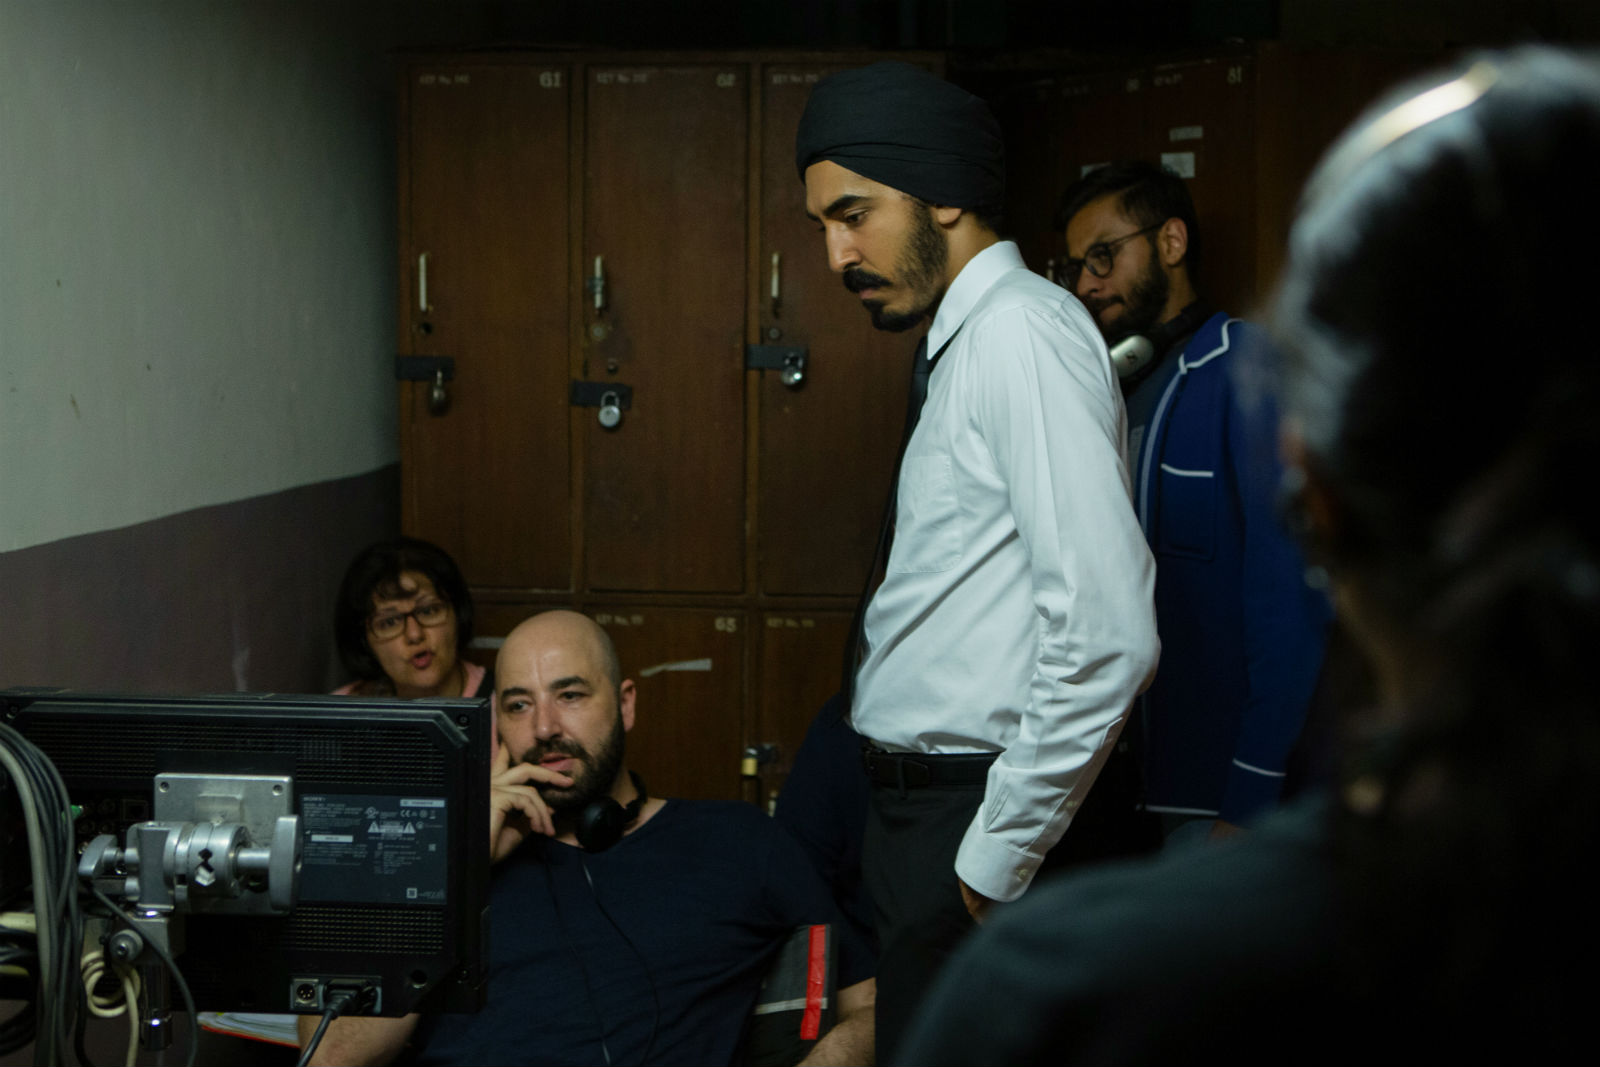 Director Anthony Maras (left) and actor Dev Patel (right) on the set of Hotel Mumbai.